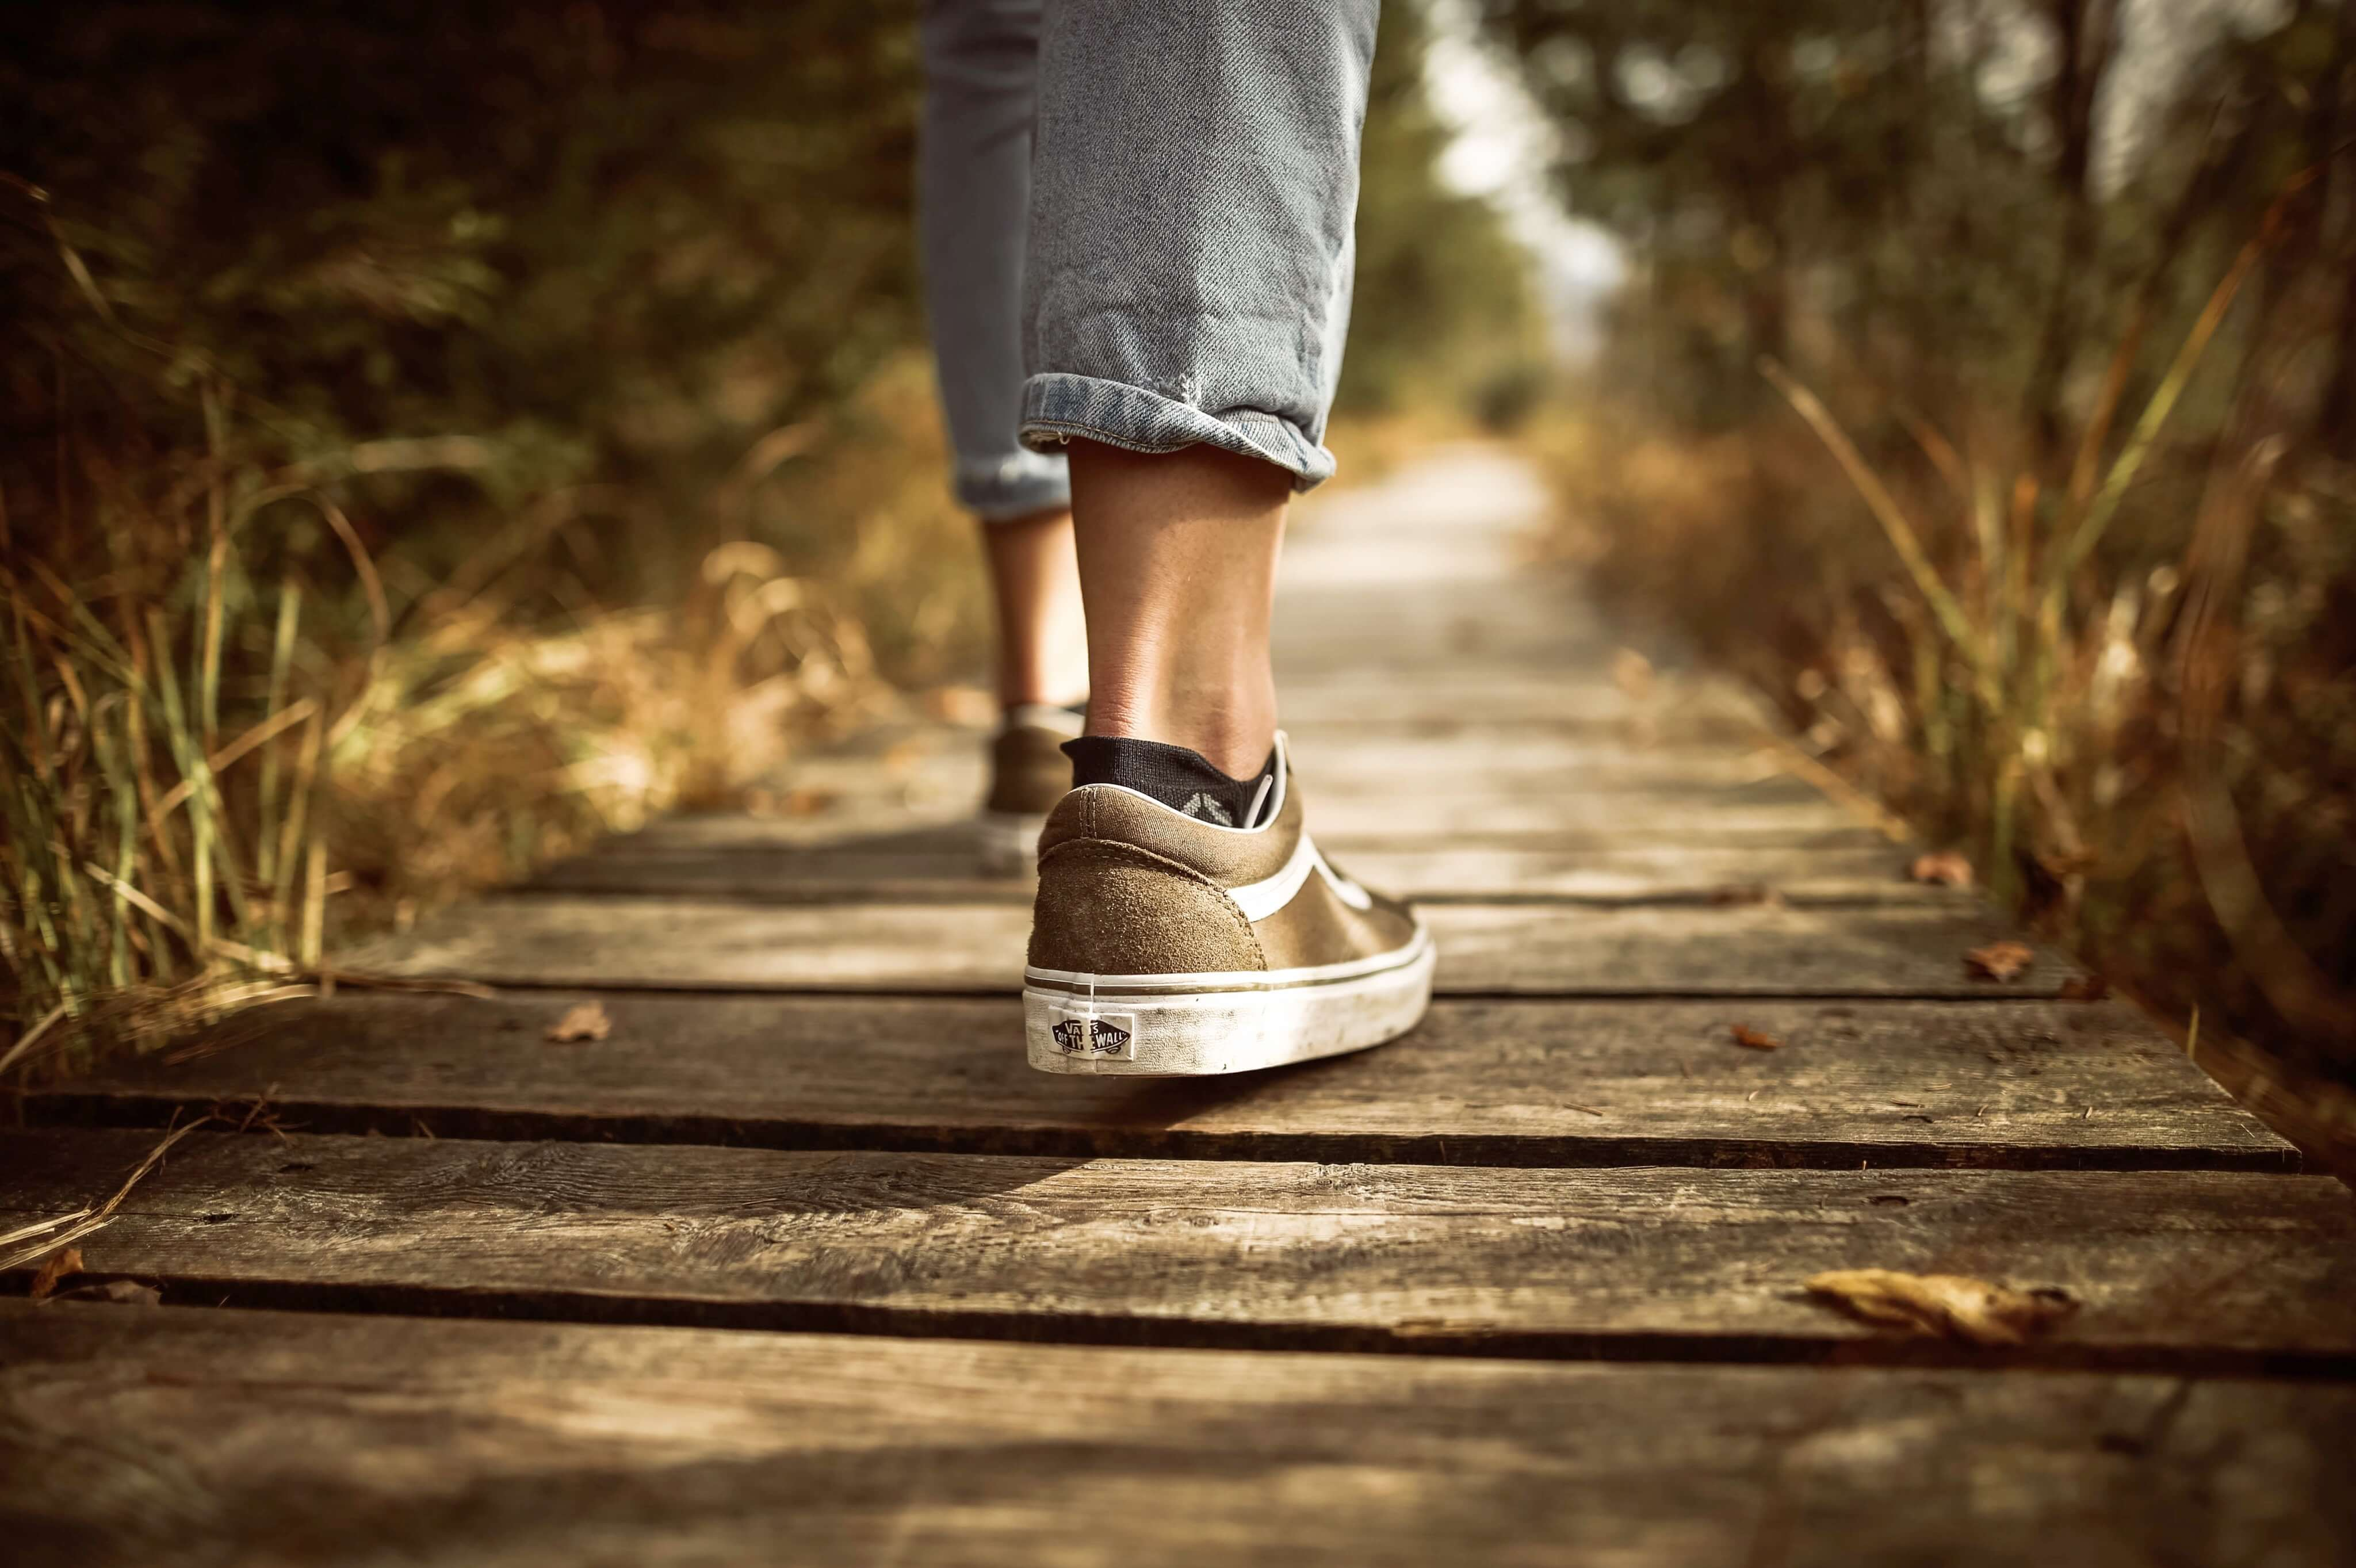 walking on a wooden pathway